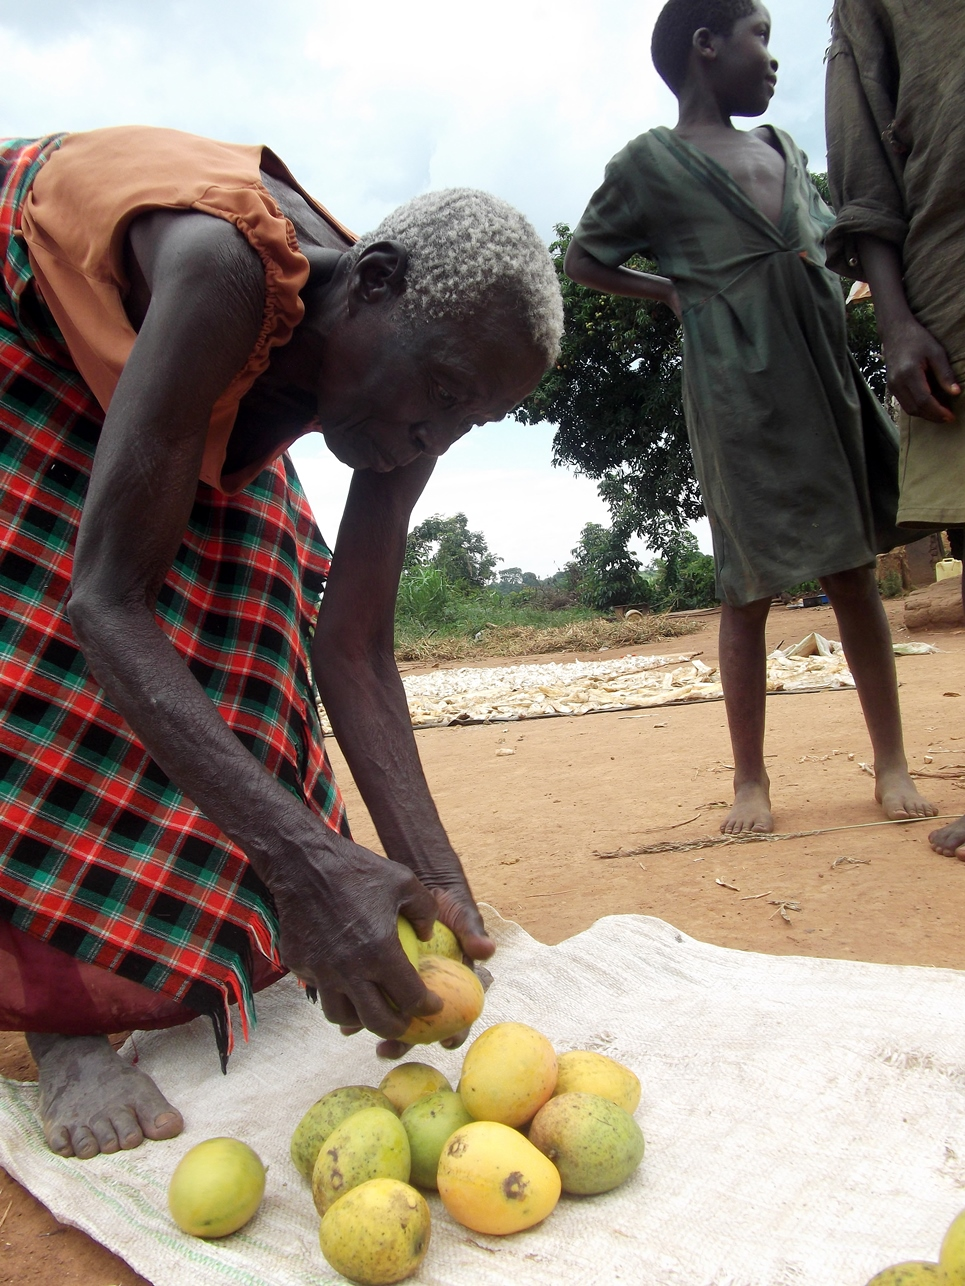 A woman sets up a roadside stall in Kigorobya, Hoima. (Photo: Stephen Wandera)